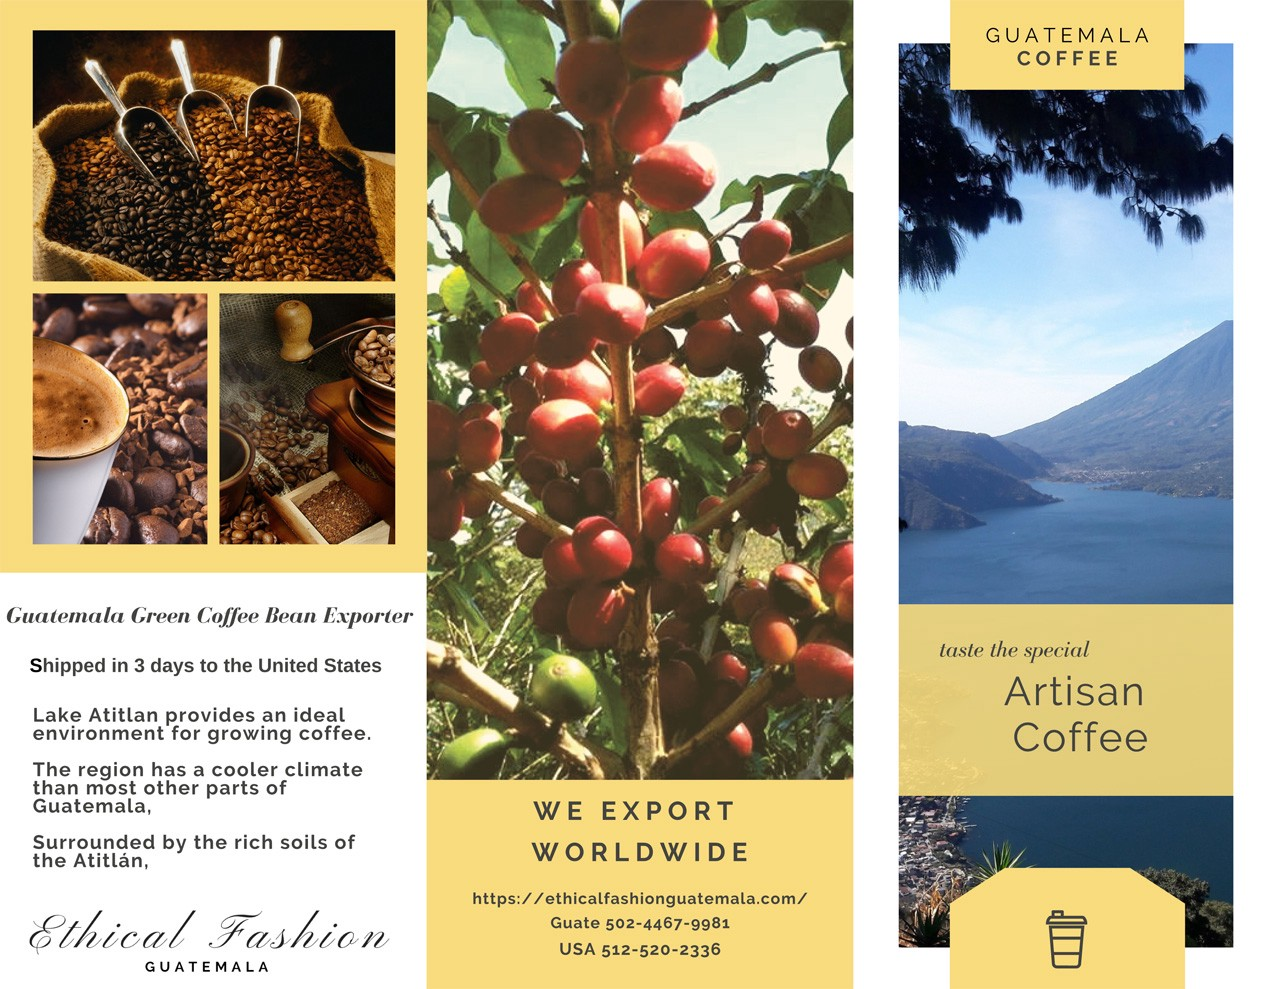 Guatemala Arabica Green Coffee Bean Exporting By Ethical Fashion